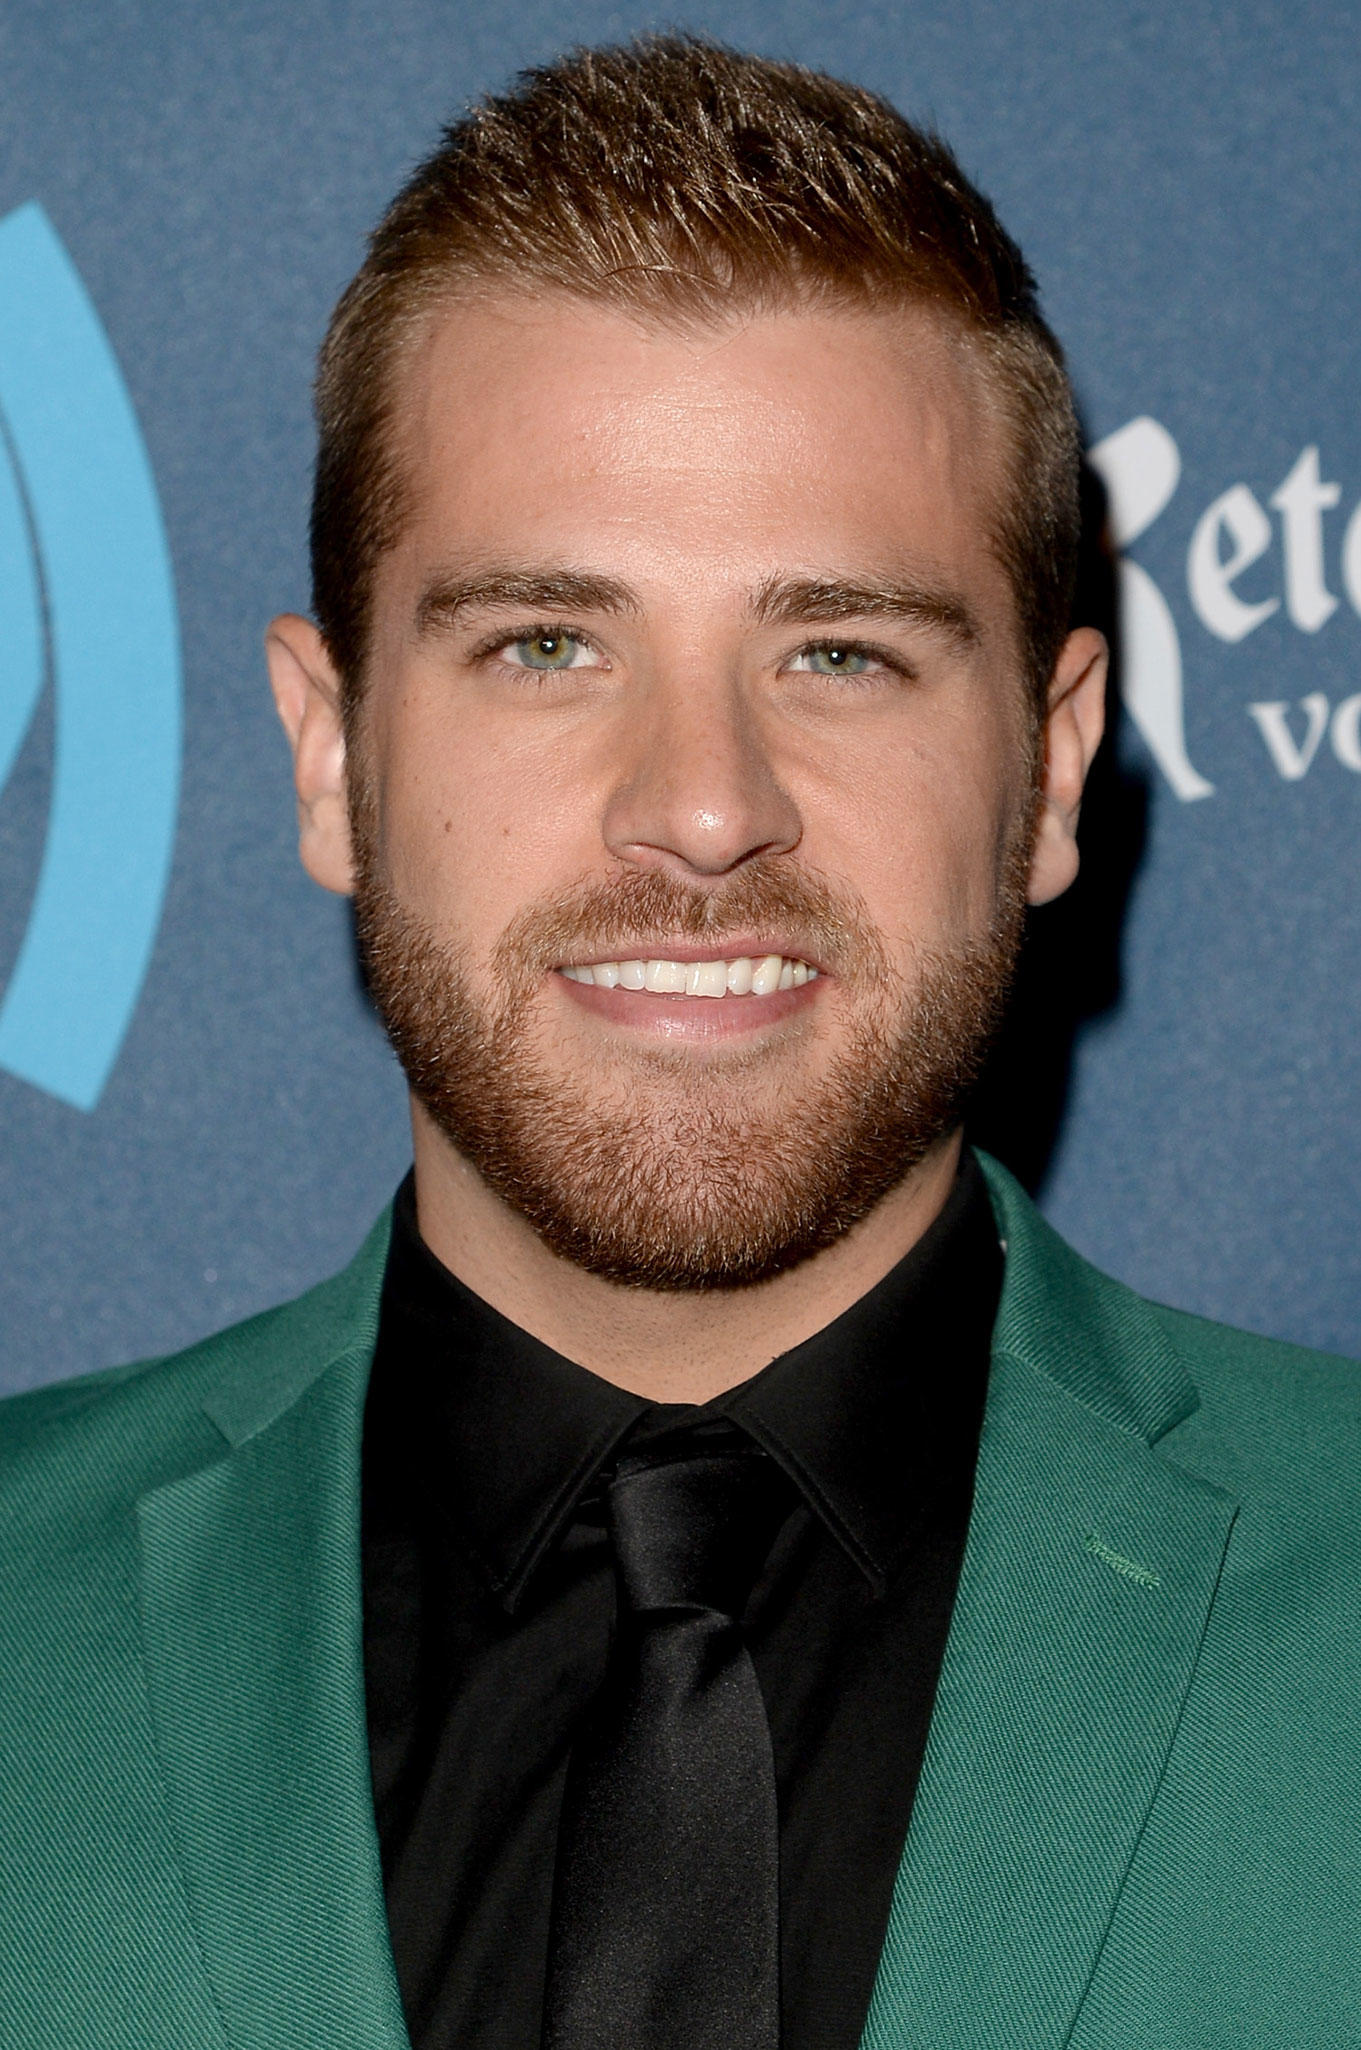 Scott Evans at the 24th Annual GLAAD Media Awards.